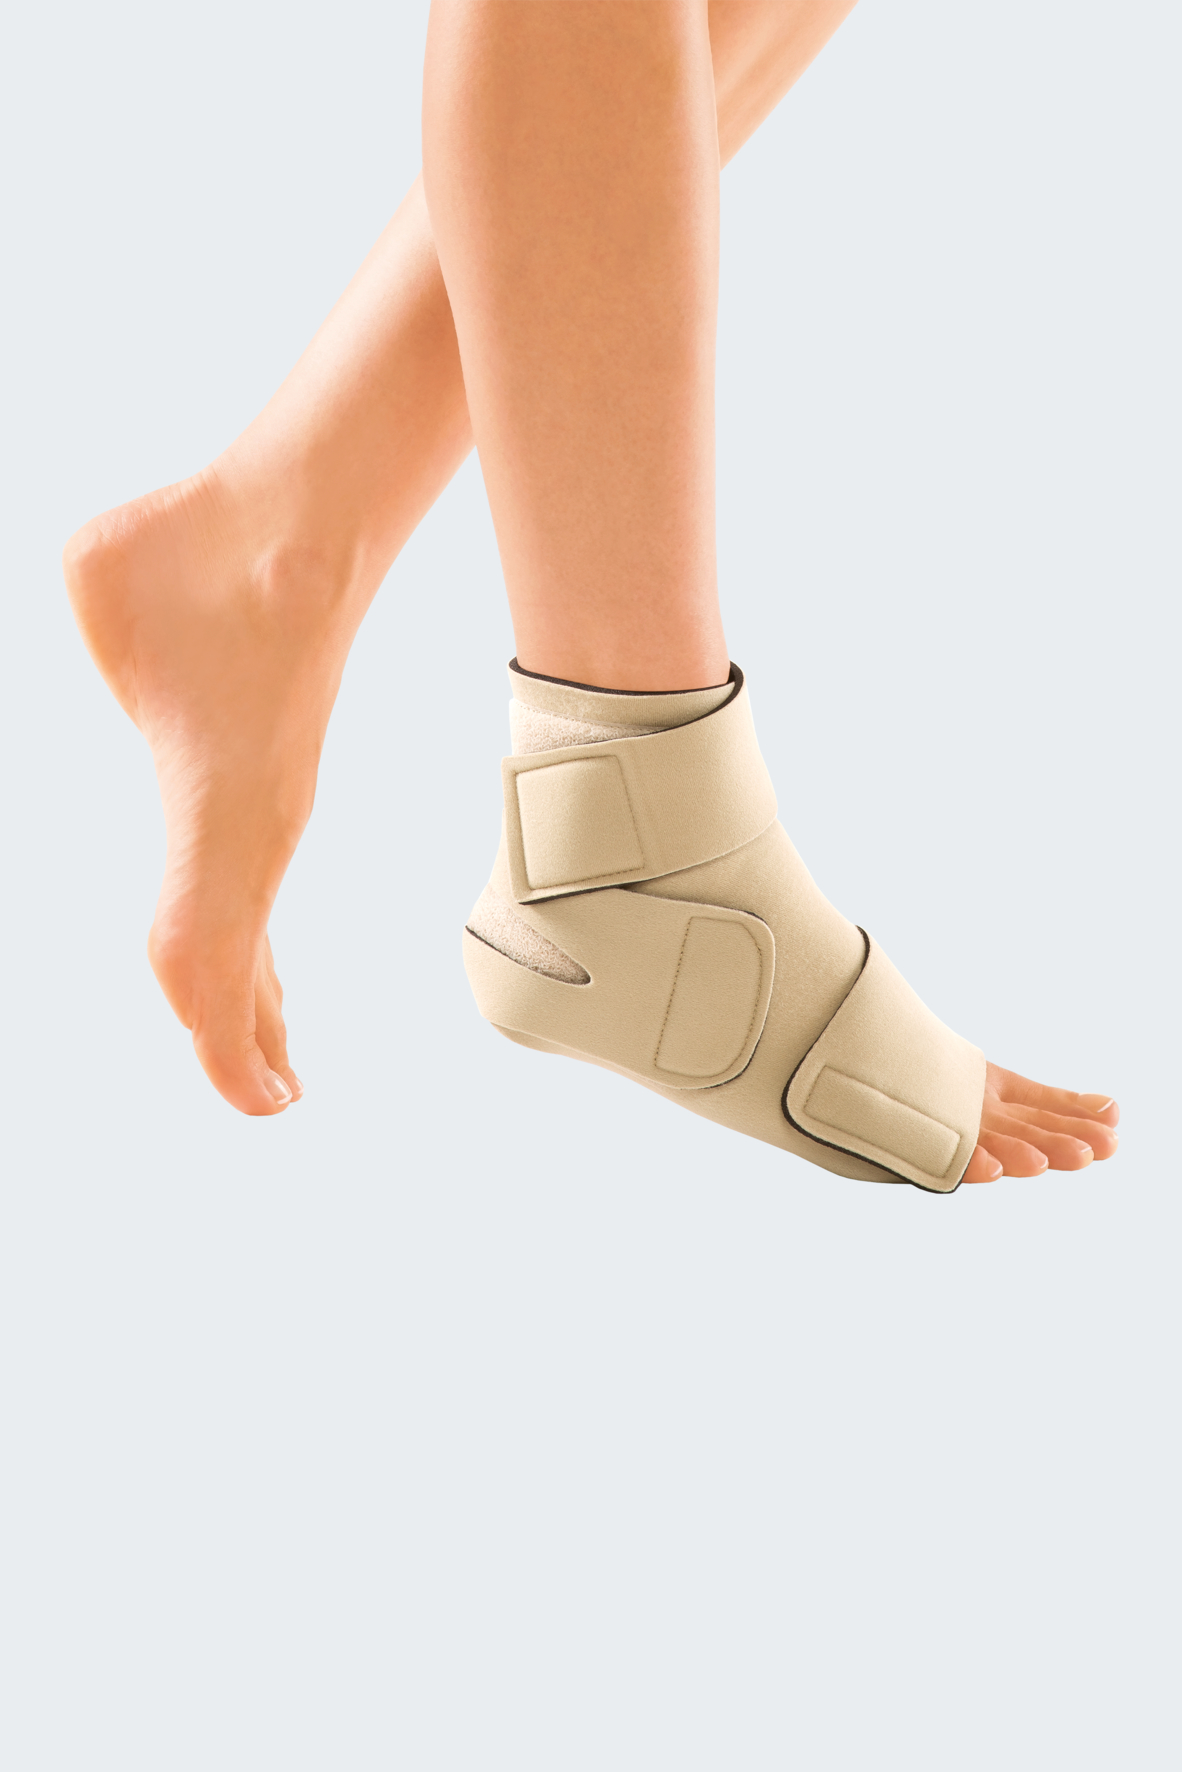 Juxta-Fit Foot Wrap